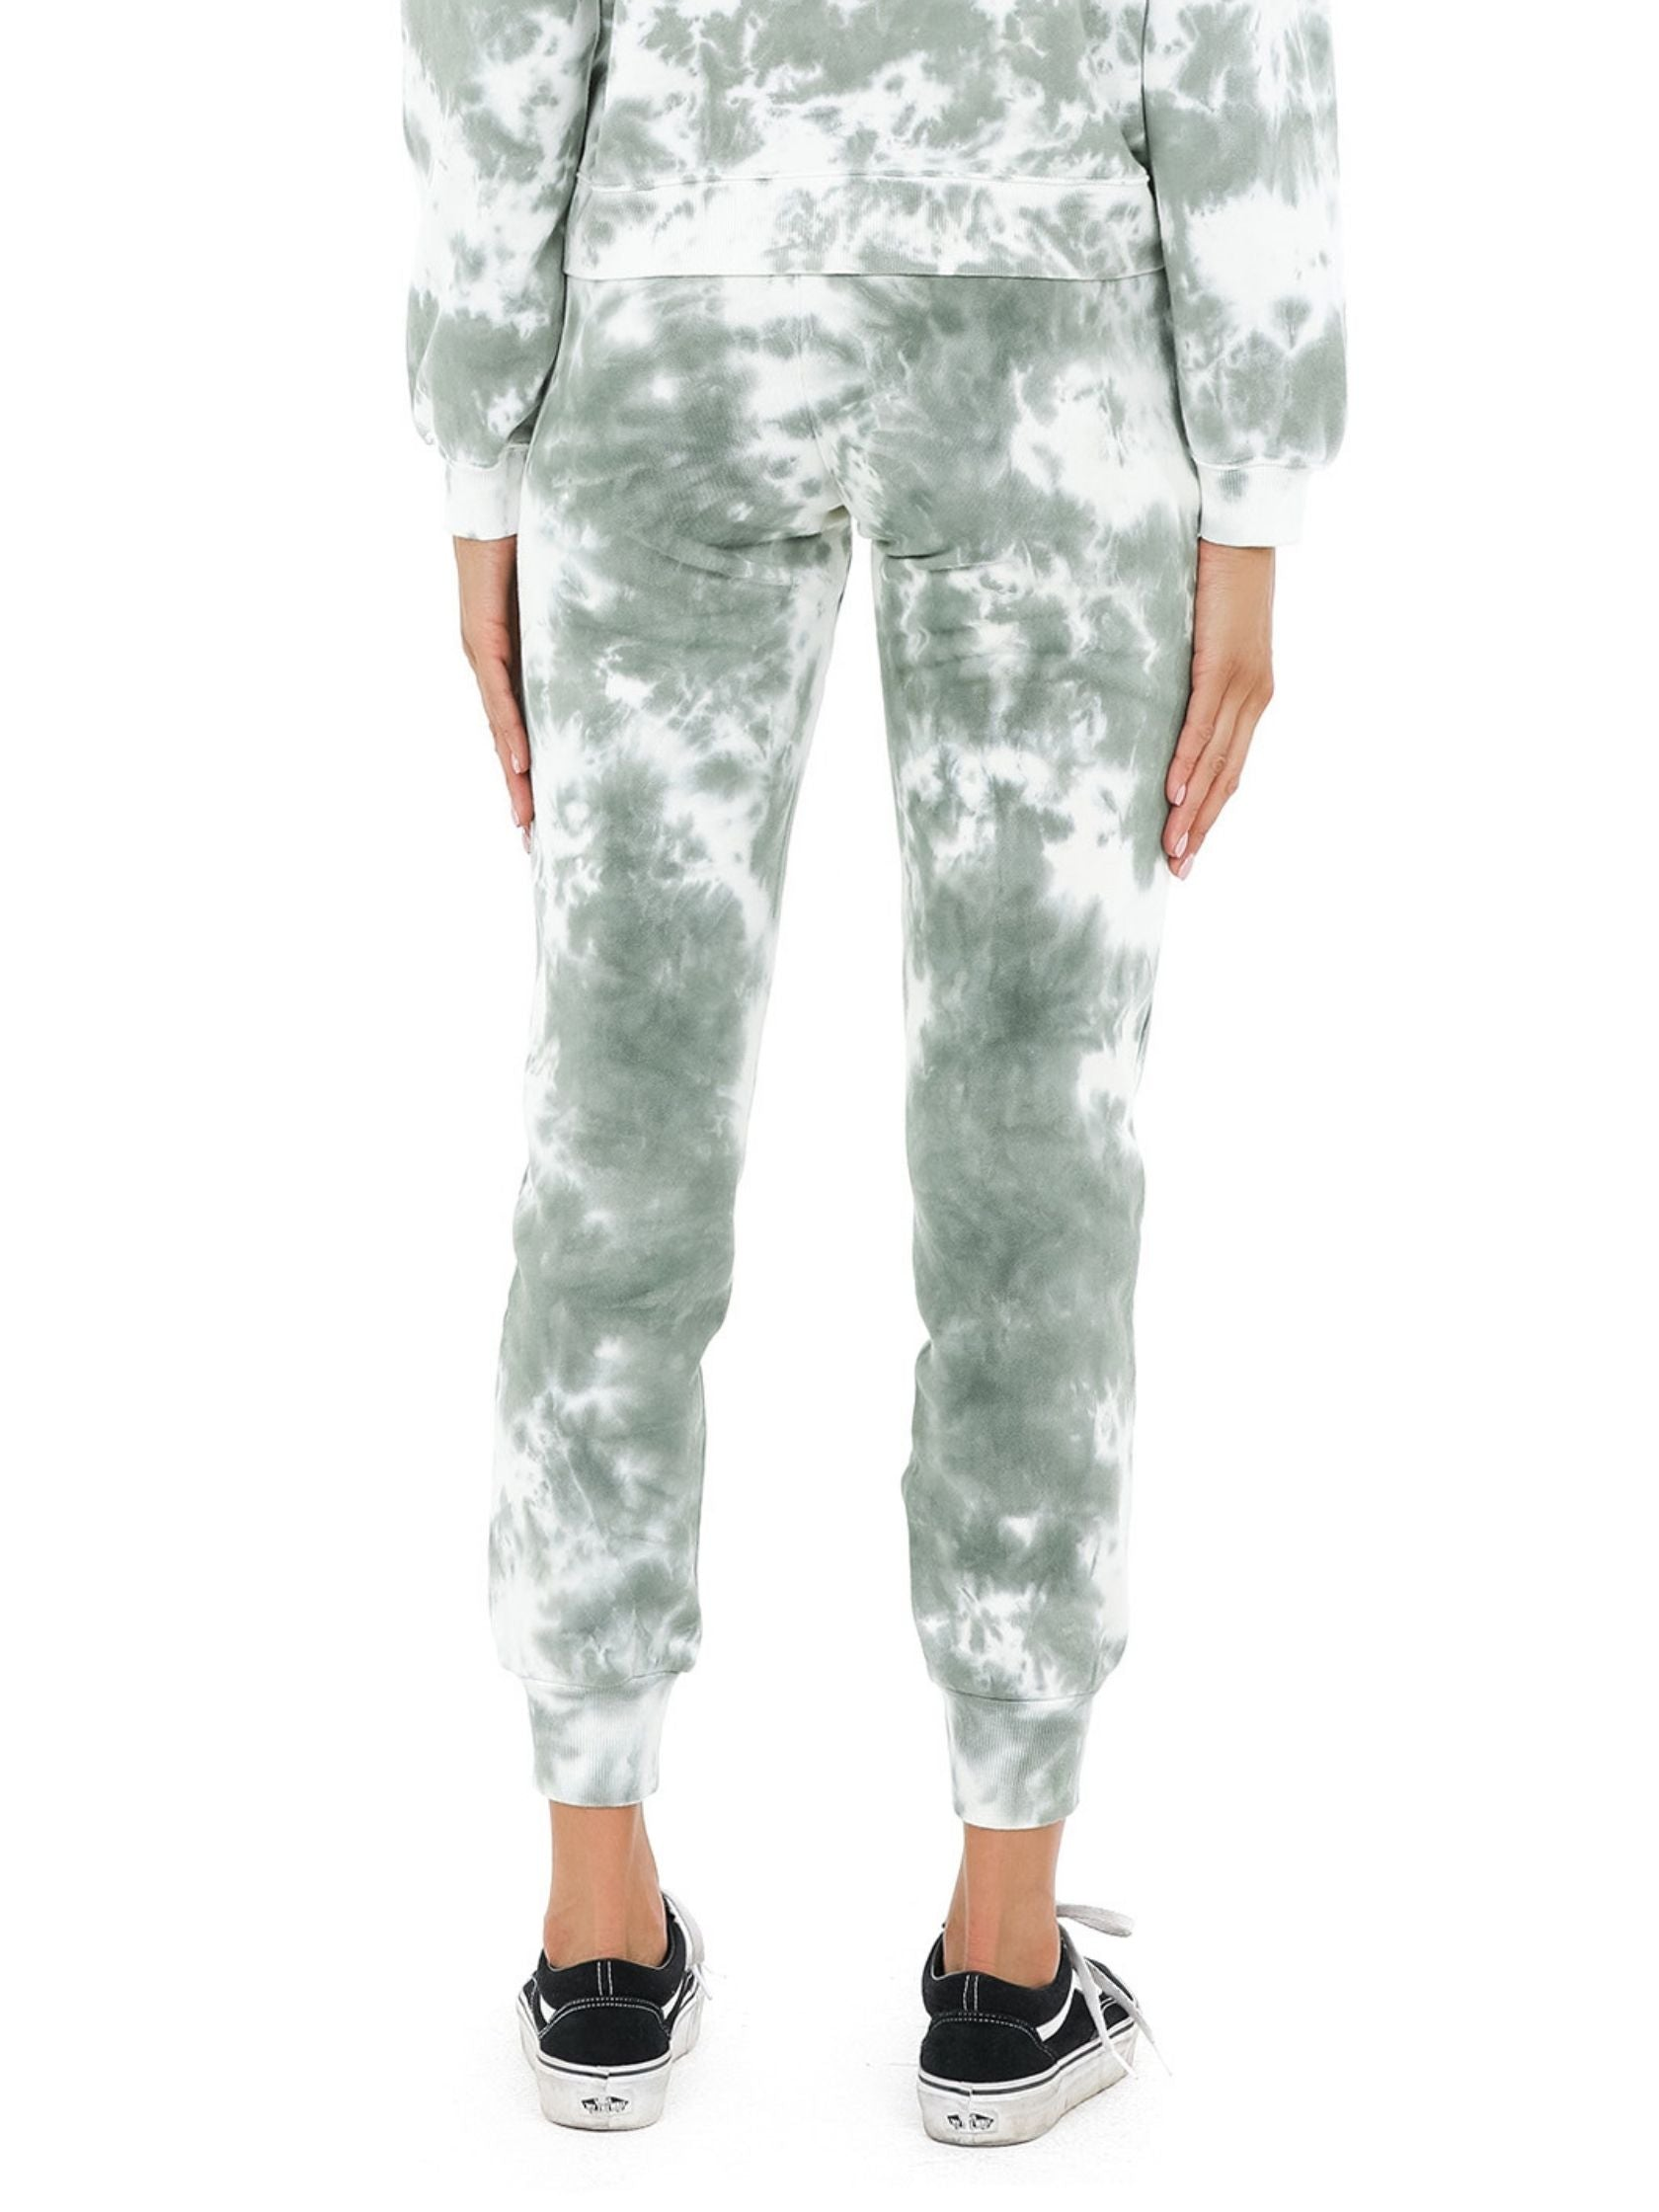 Women outfit in a joggers rental from 525 called French Terry Tie Dye Joggers